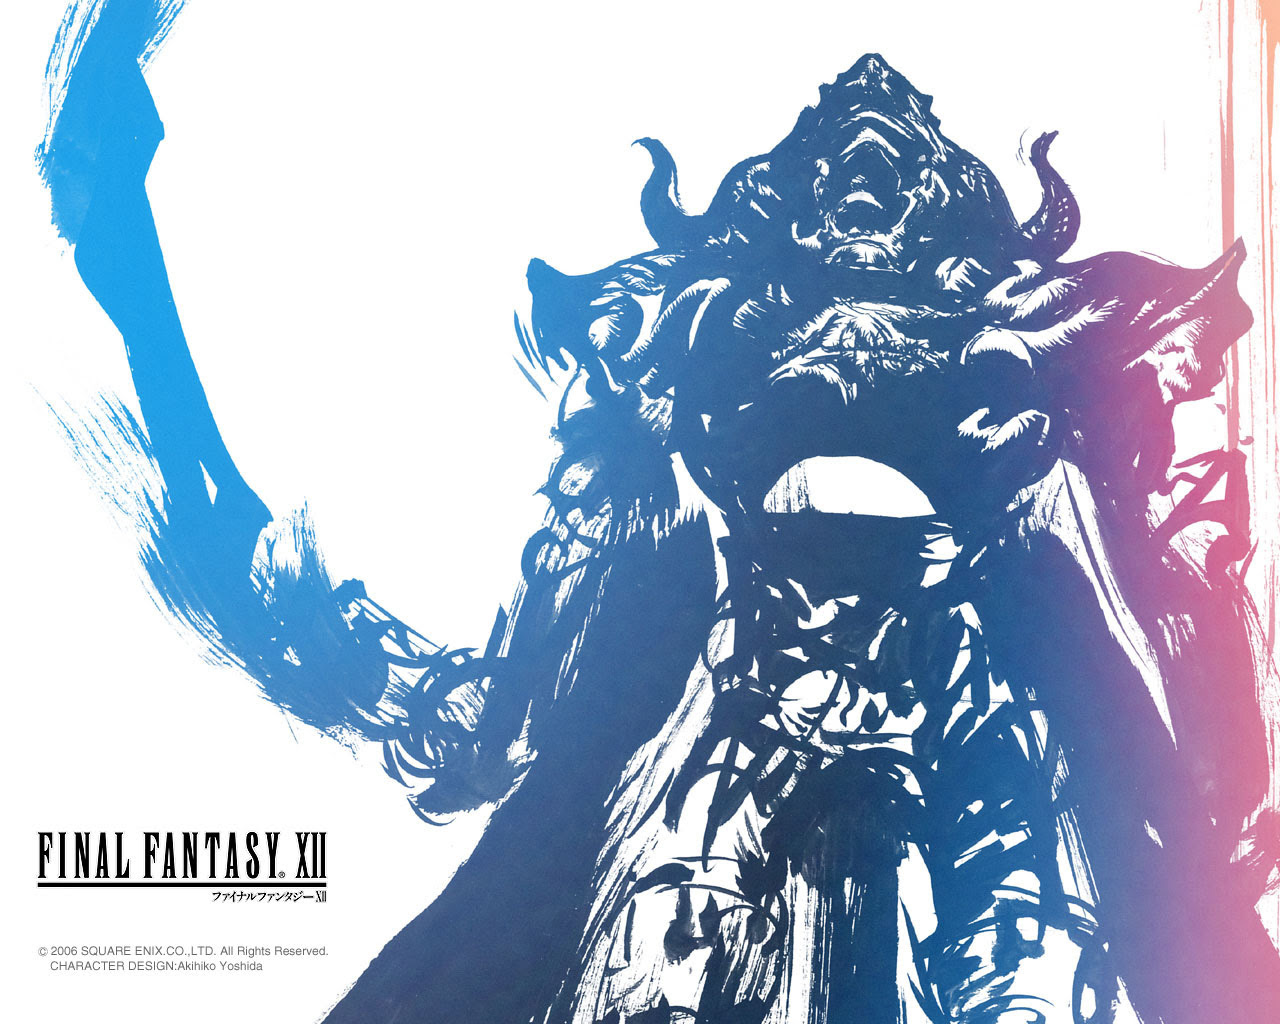 Final Fantasy Xii Wallpapers Ashe Vaan Balthier Fran Basch